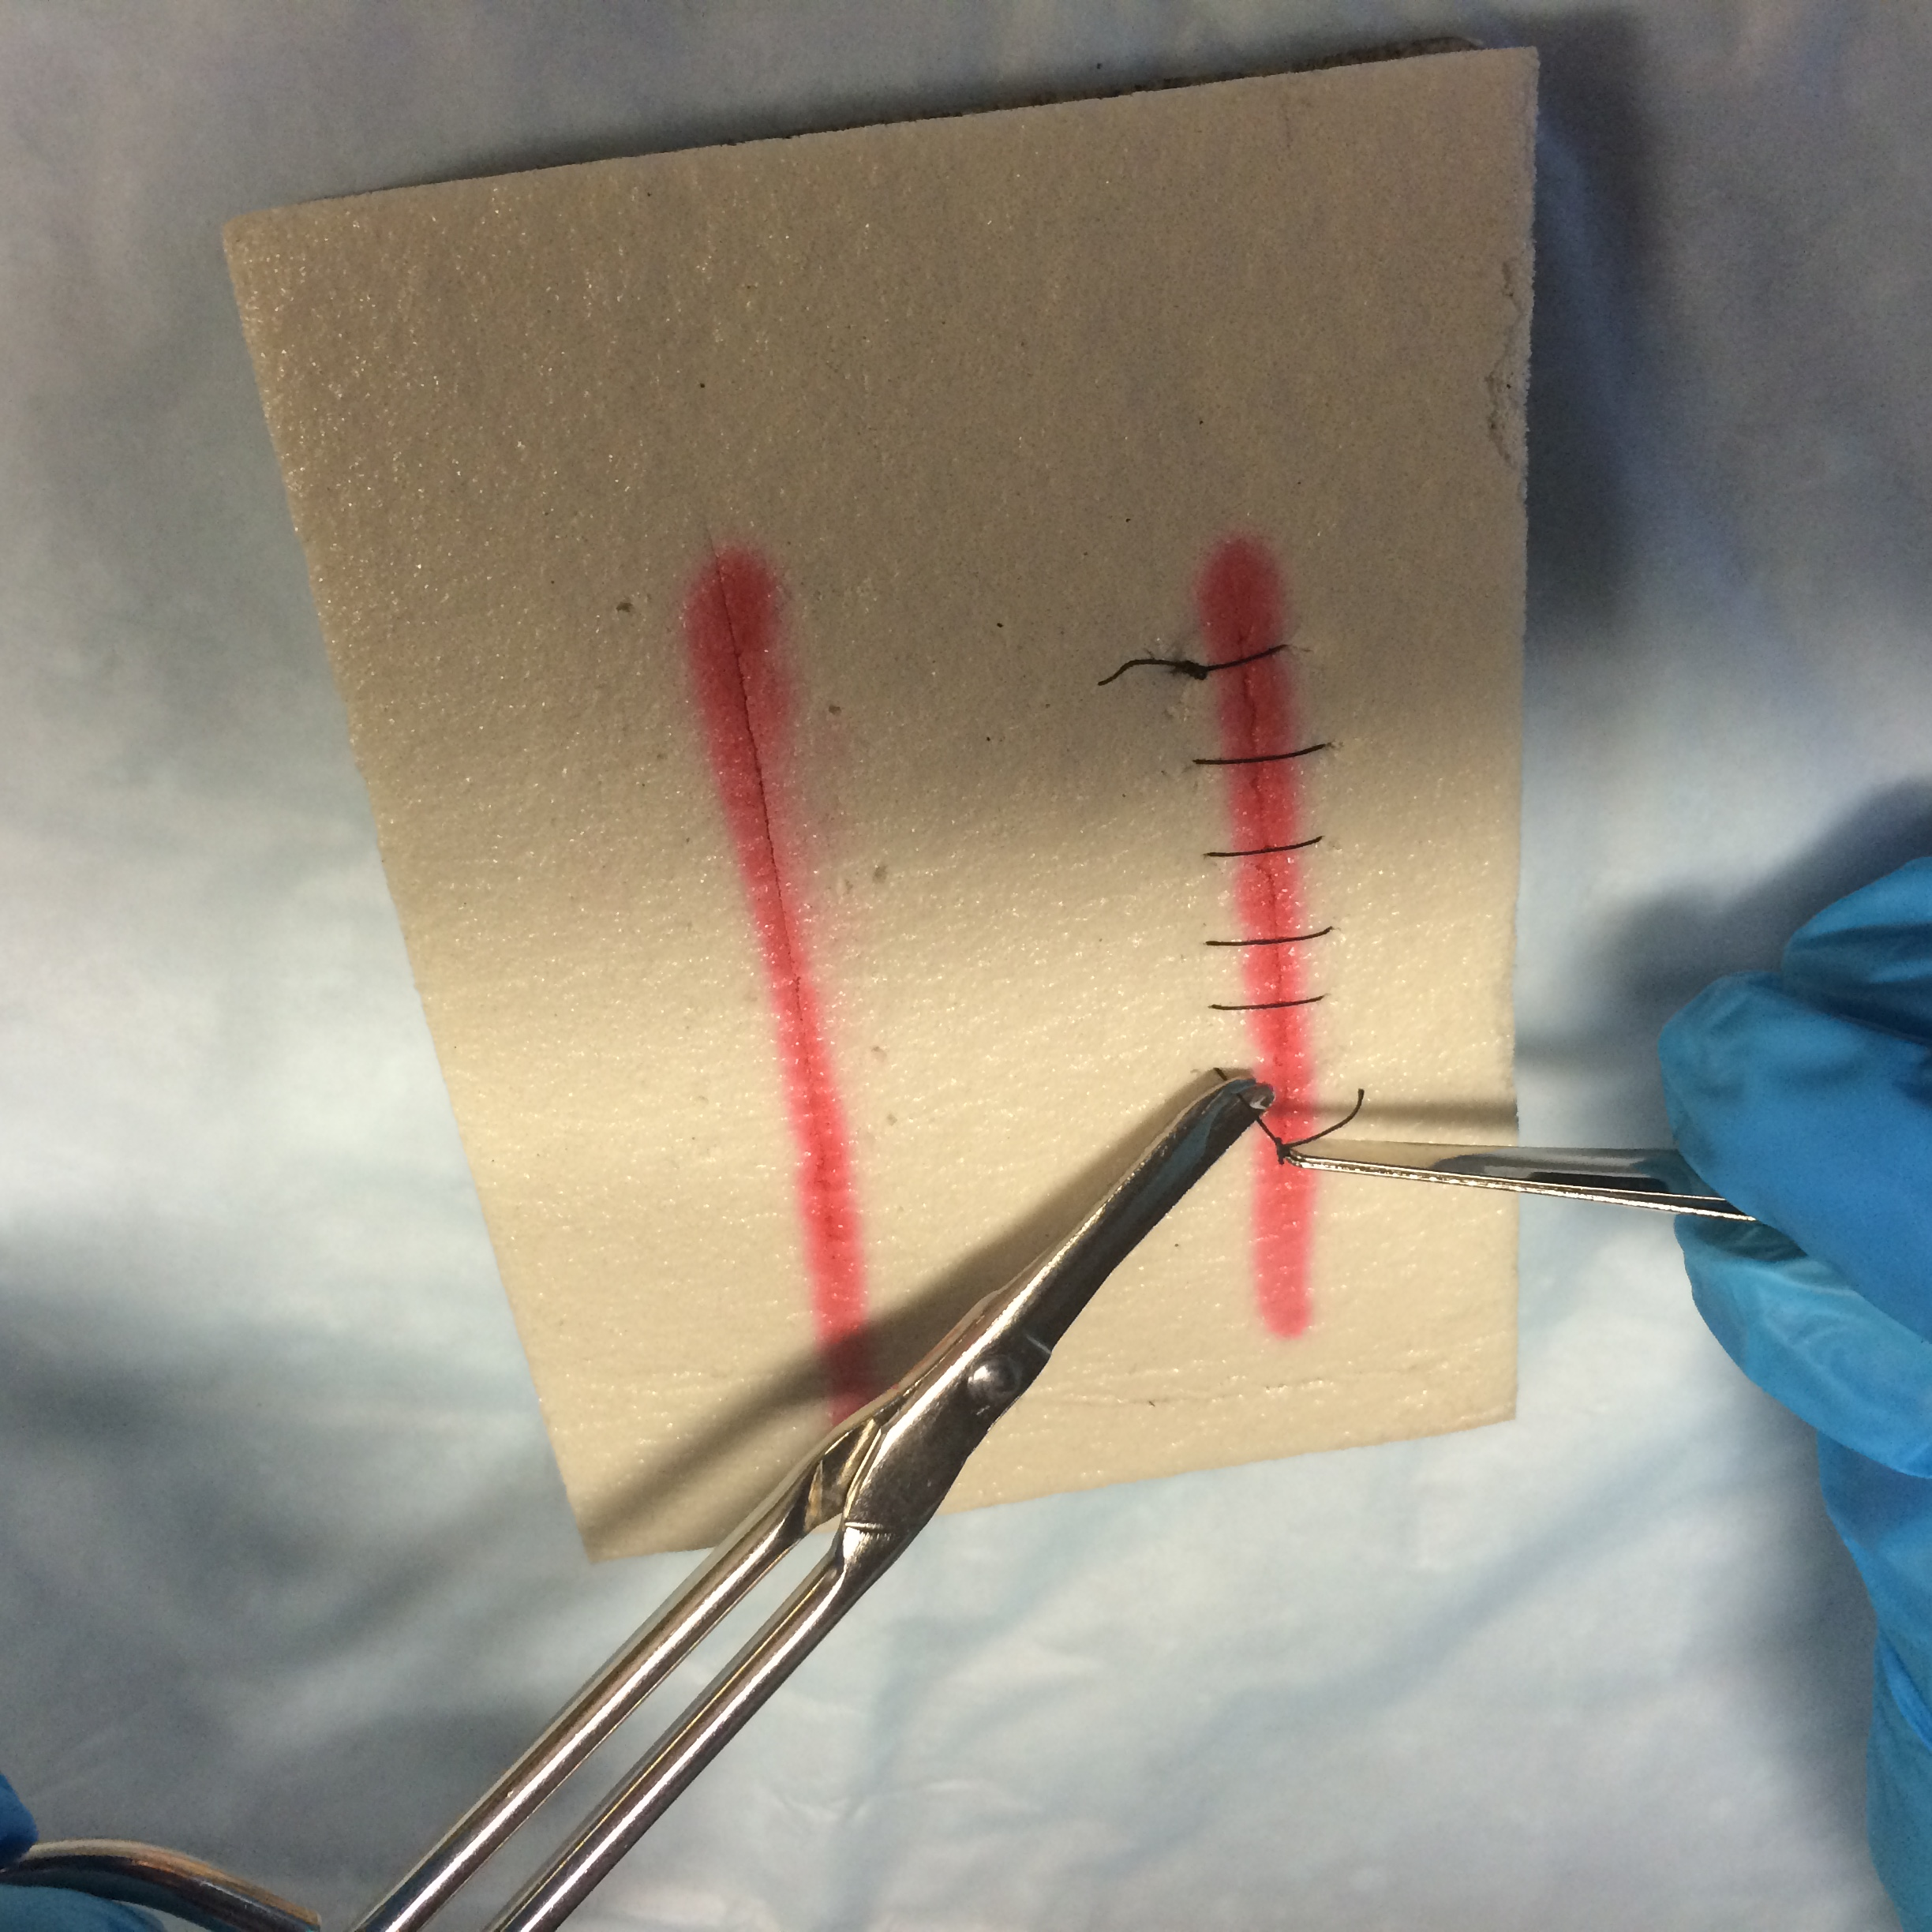 4 4 Suture Removal – Clinical Procedures for Safer Patient Care